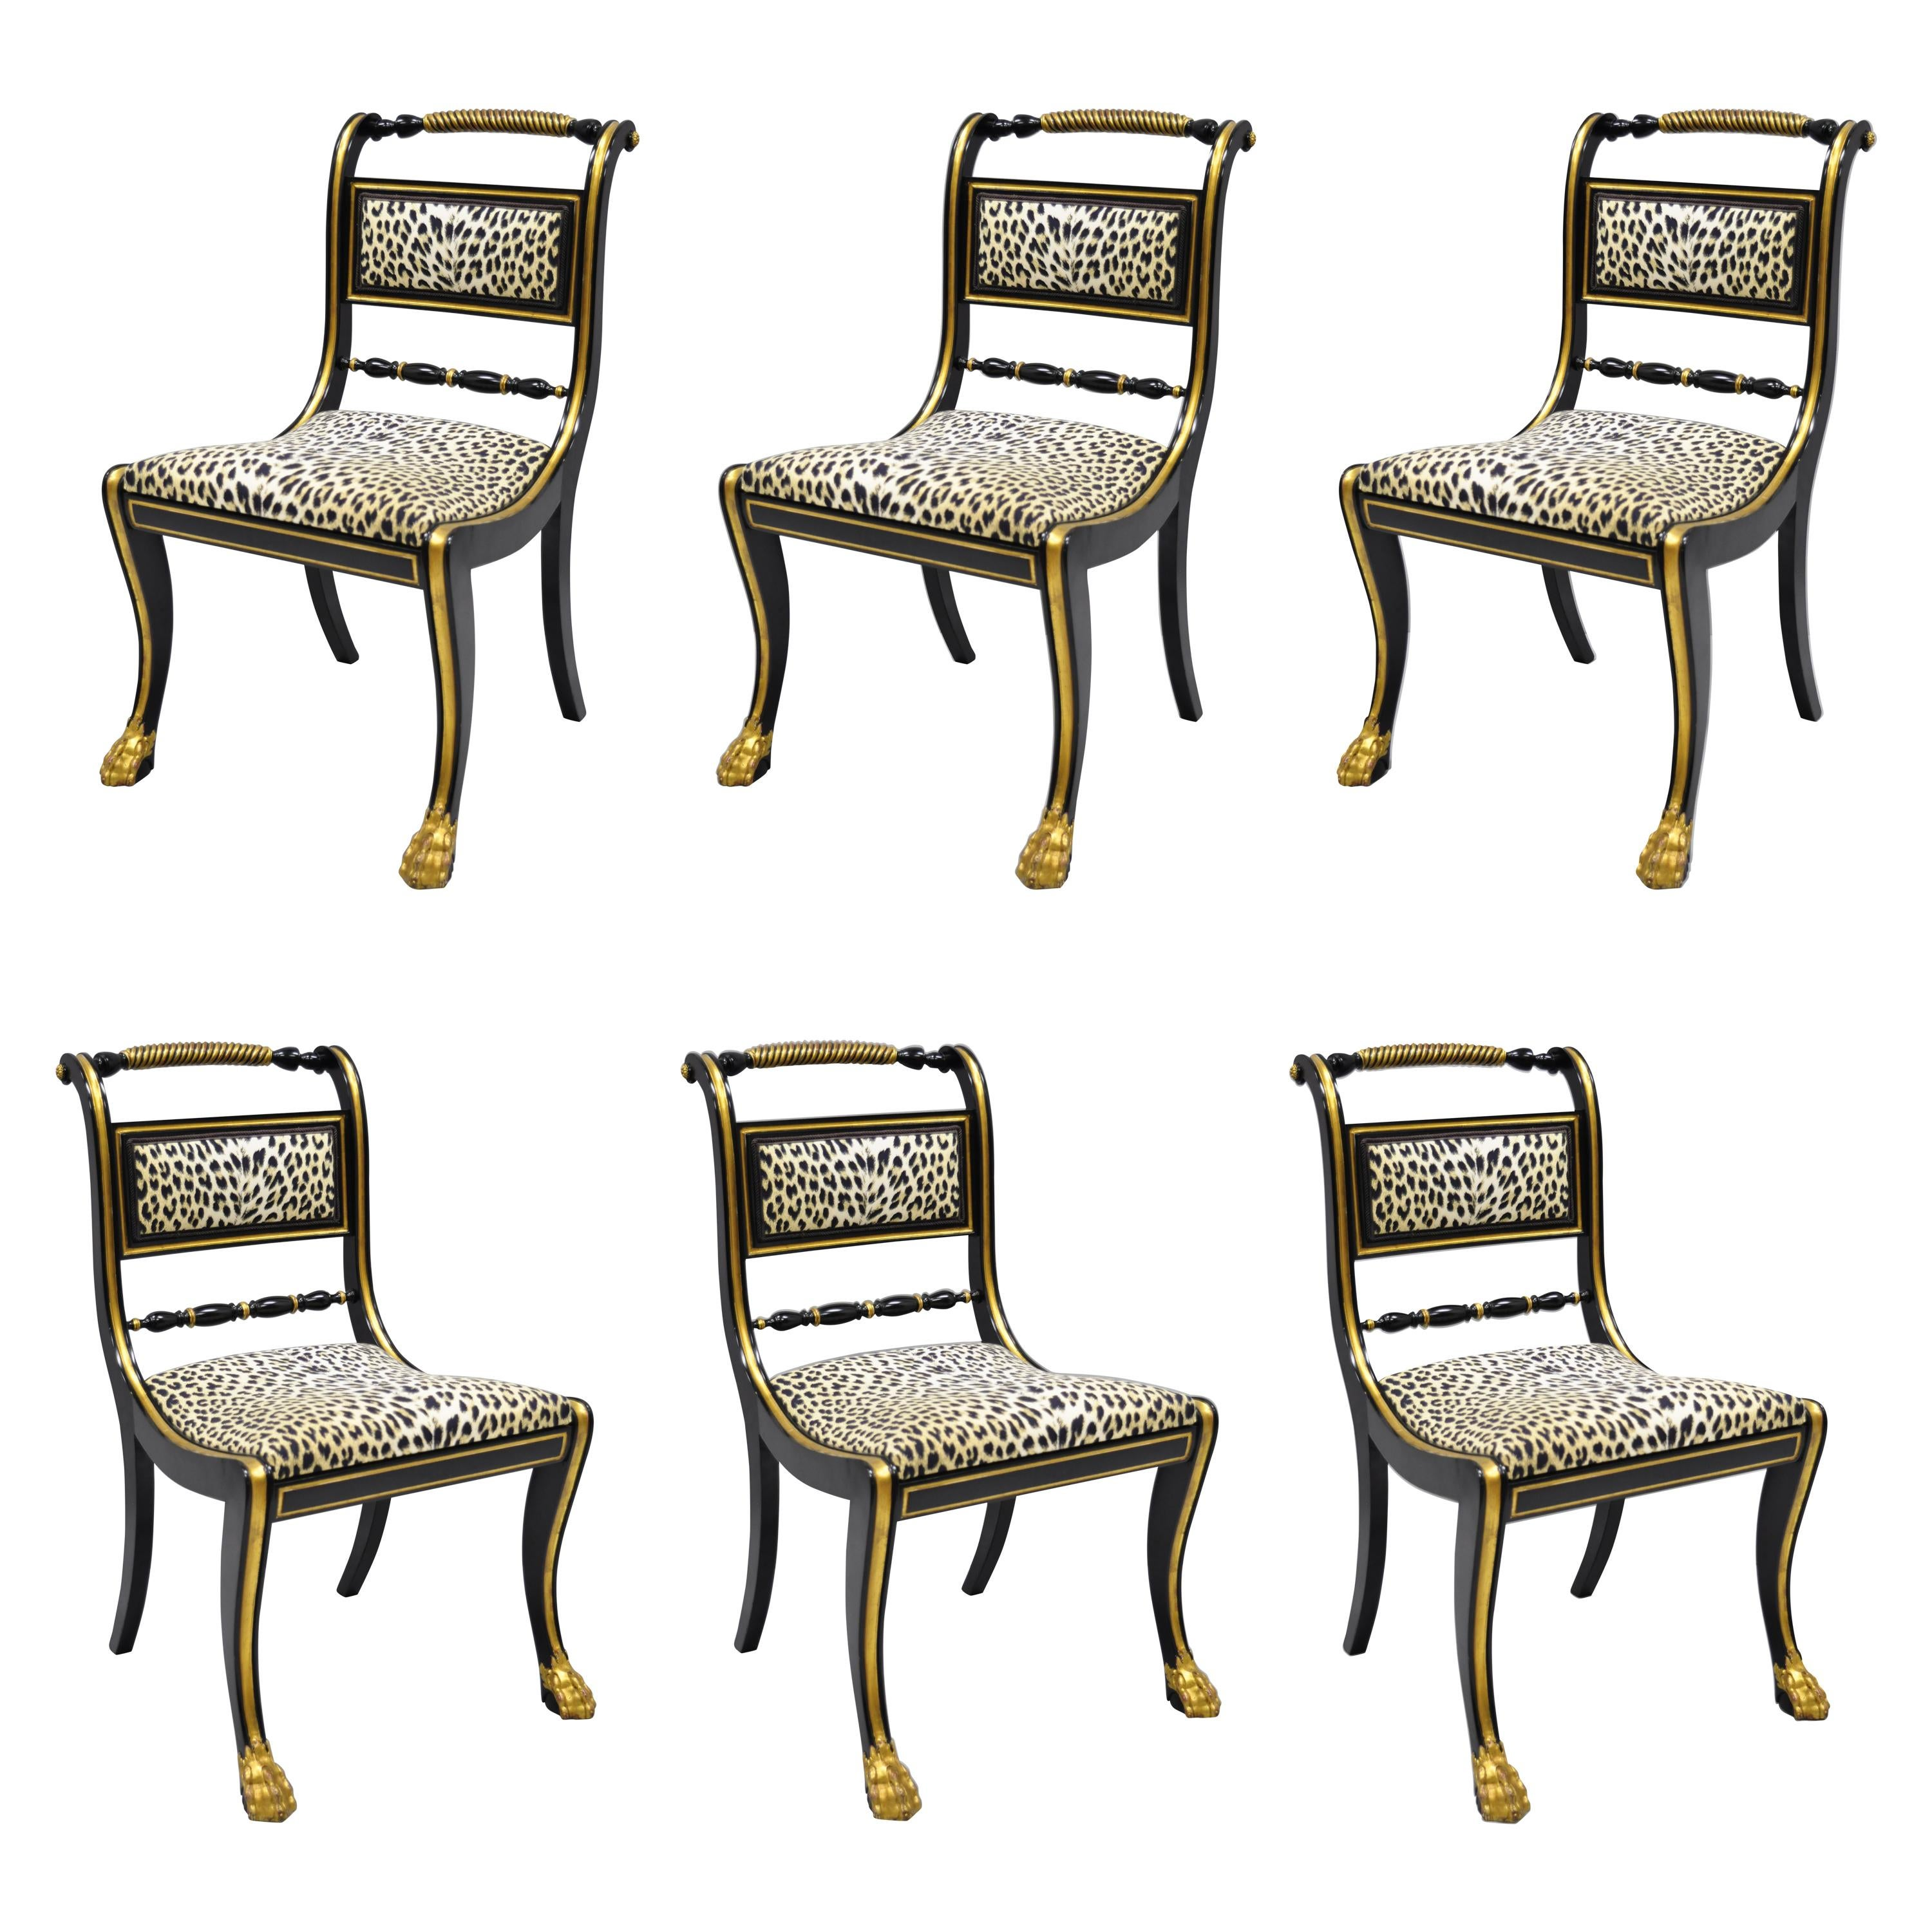 dining chairs fabric oversized corner reading chair 6 black and gold regency style paw feet leopard for sale